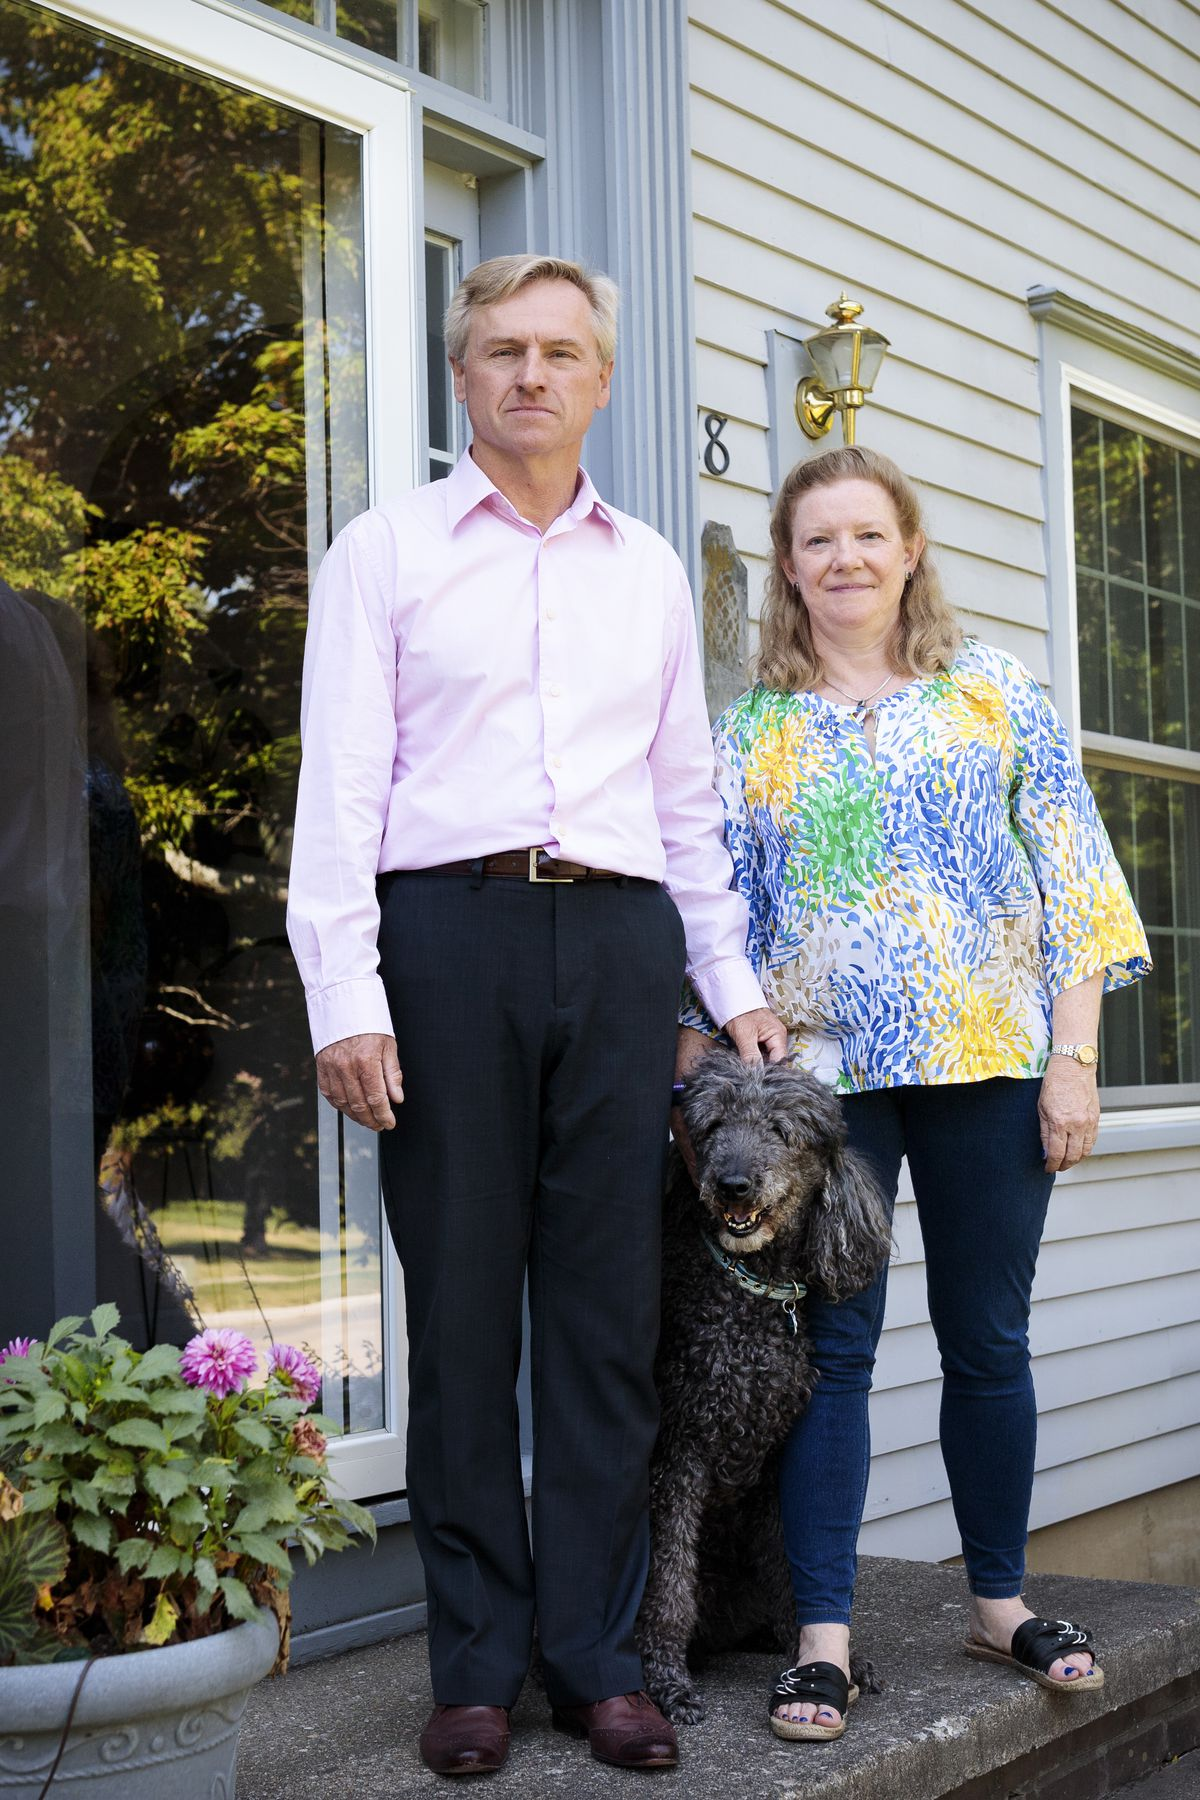 Tim and Kim Blake in front of their home in South Burlington, Vermont, on August 29, 2019.